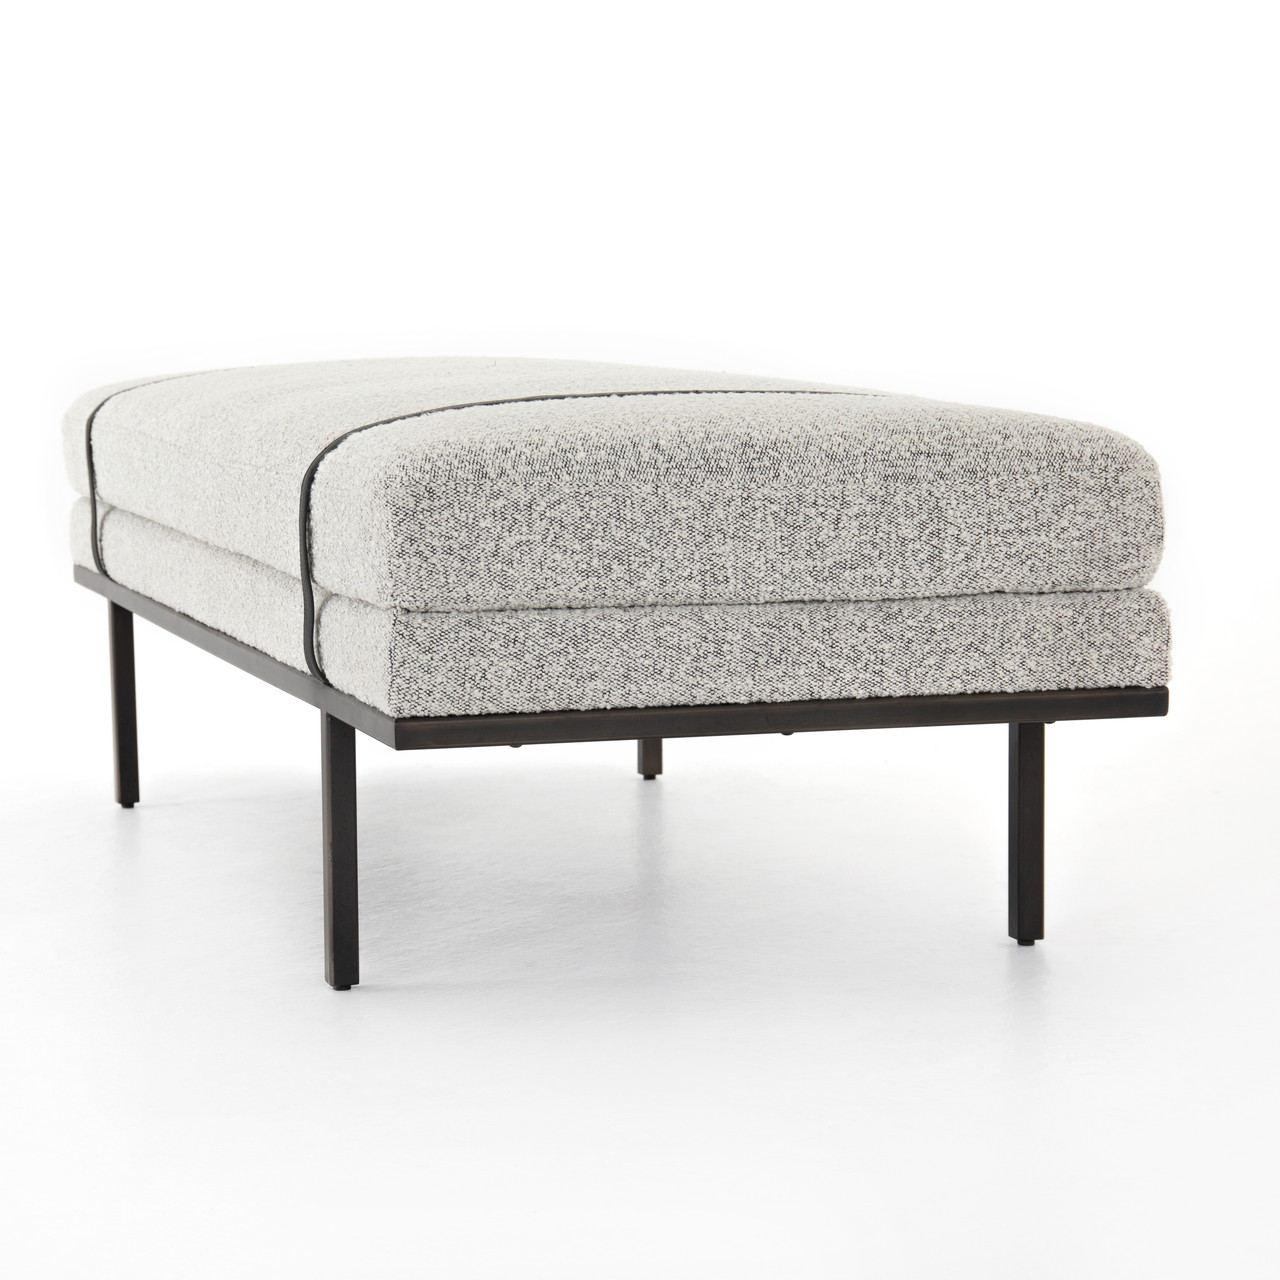 Noah Accent Bench-Knoll Domino